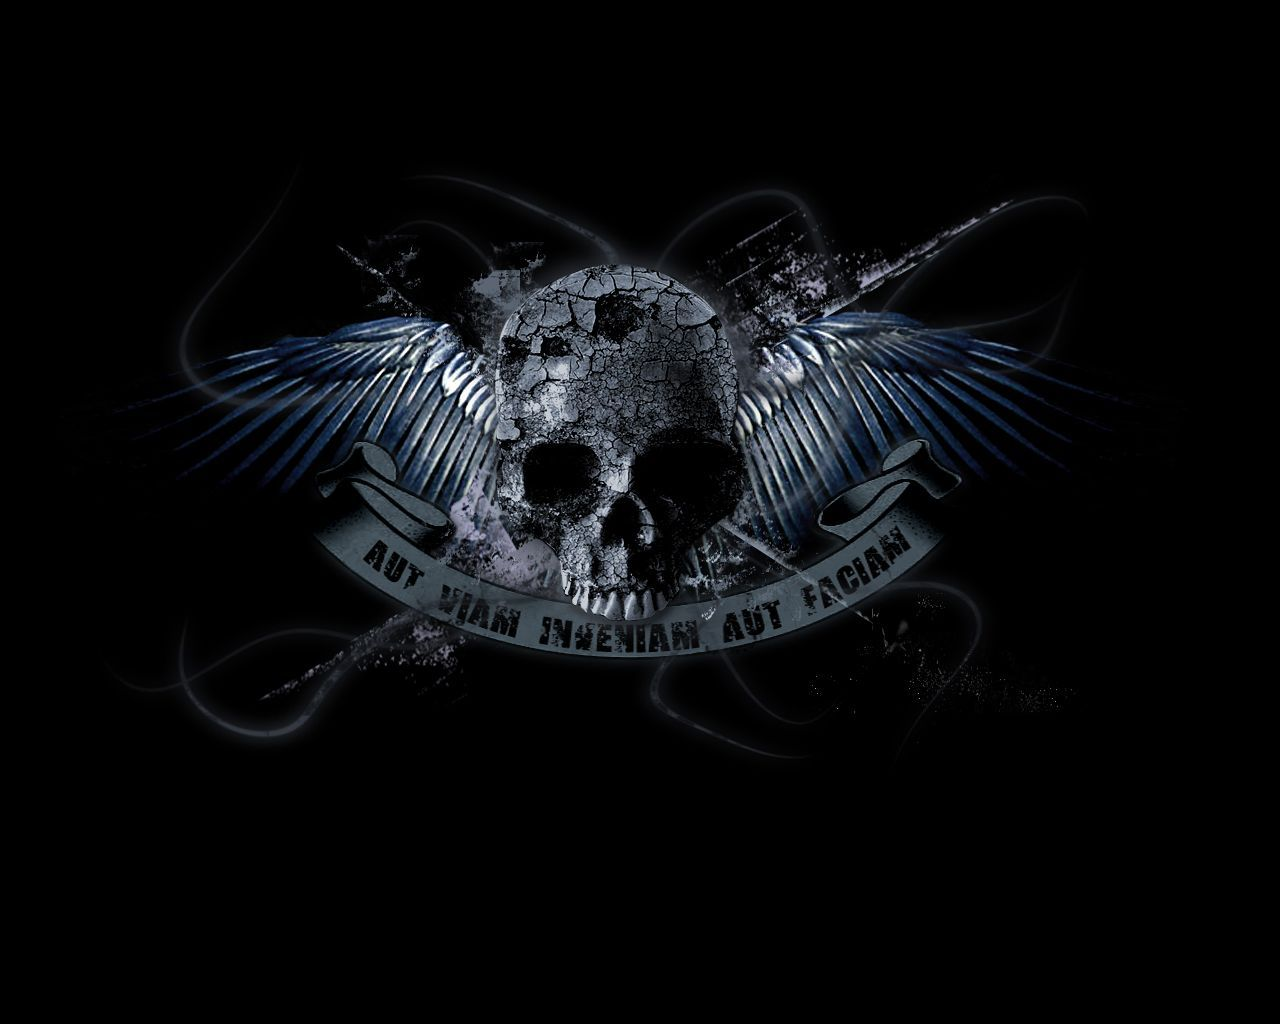 Skull with Wings Wallpapers - Top Free